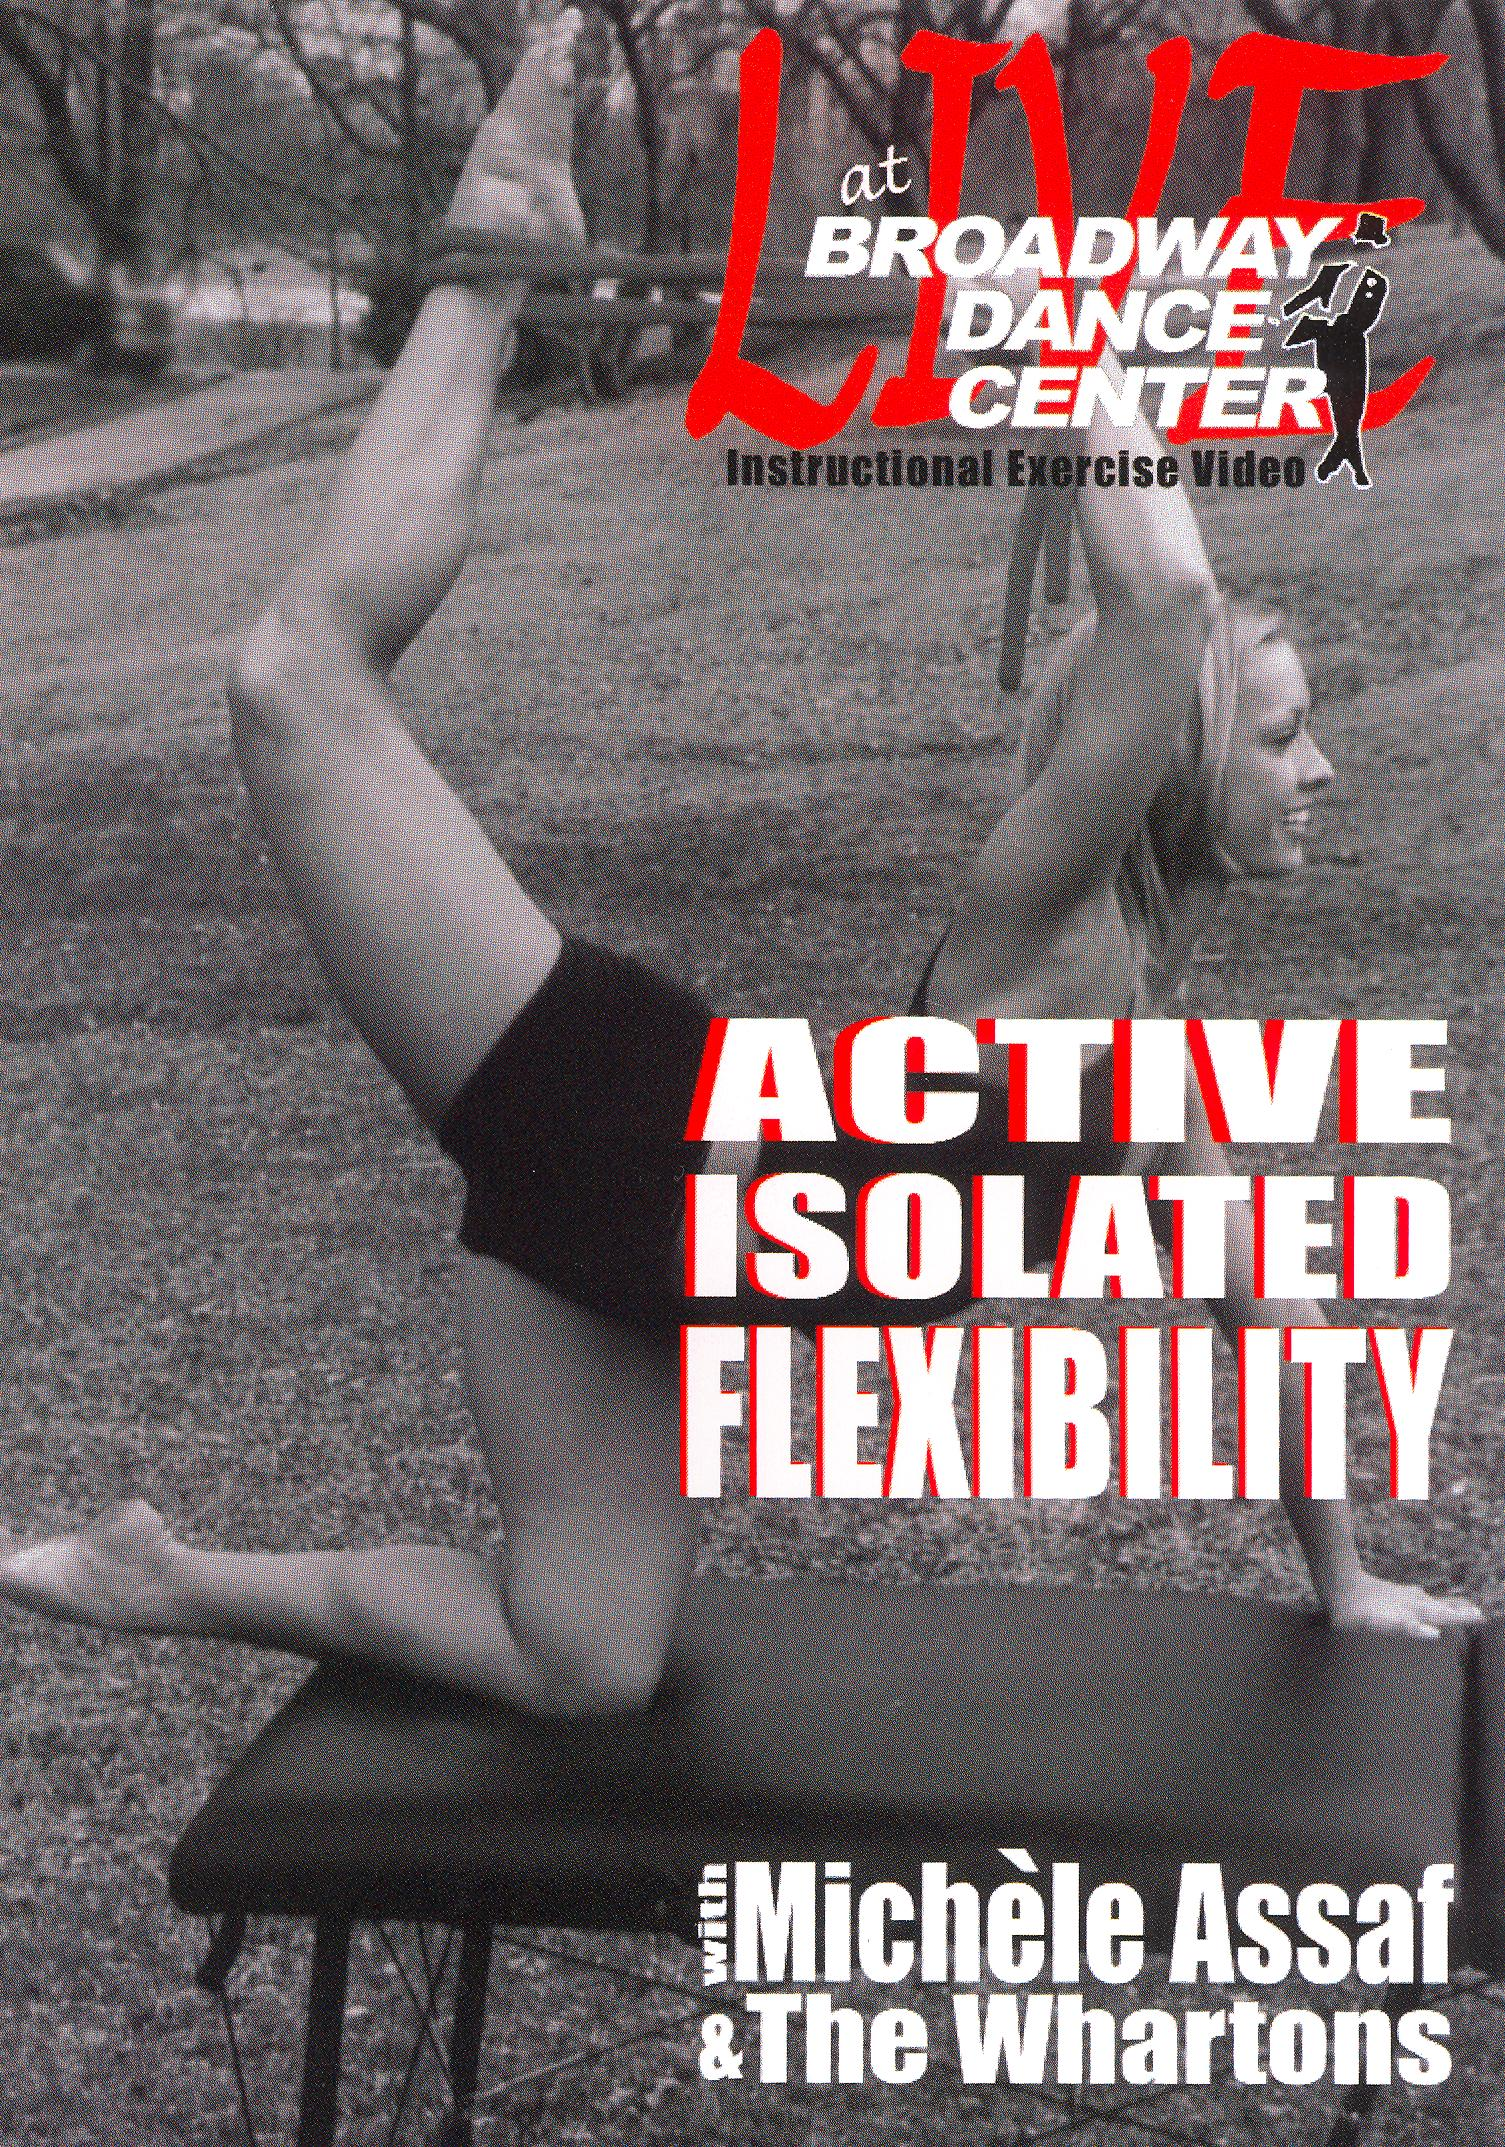 Broadway Dance Center: Active Isolated Flexibility and Stretching For Dancers